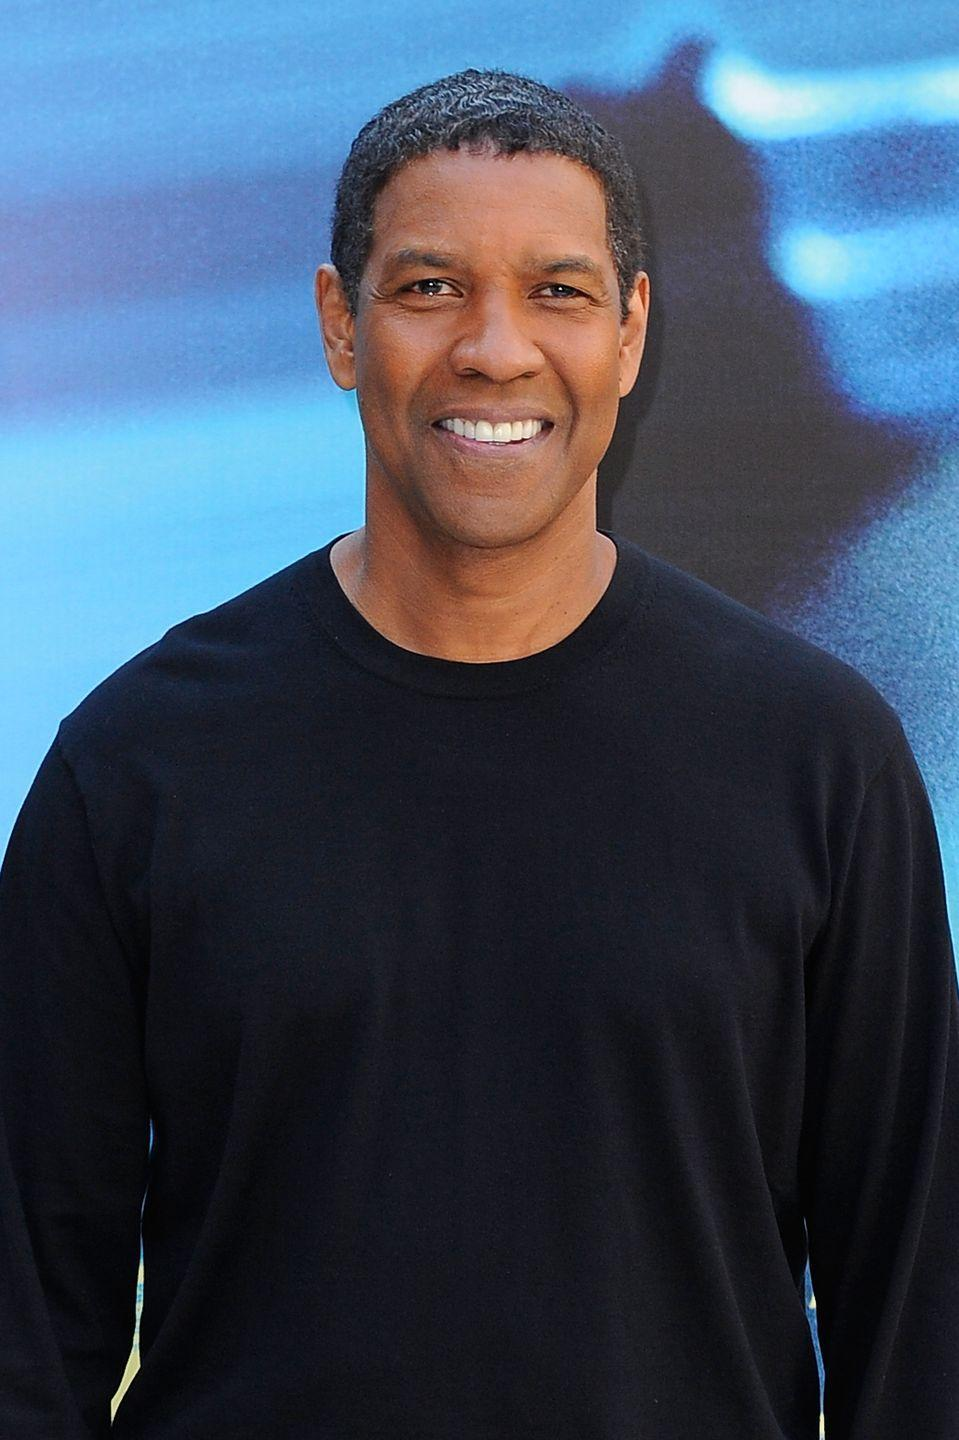 <p>On top of looking as fantastic now as he did in the '80s (and '90s, and 2000s ...), Denzel is one of the most accoladed actors of his generation, having received three Academy Awards, three Golden Globes, and a Tony.</p>